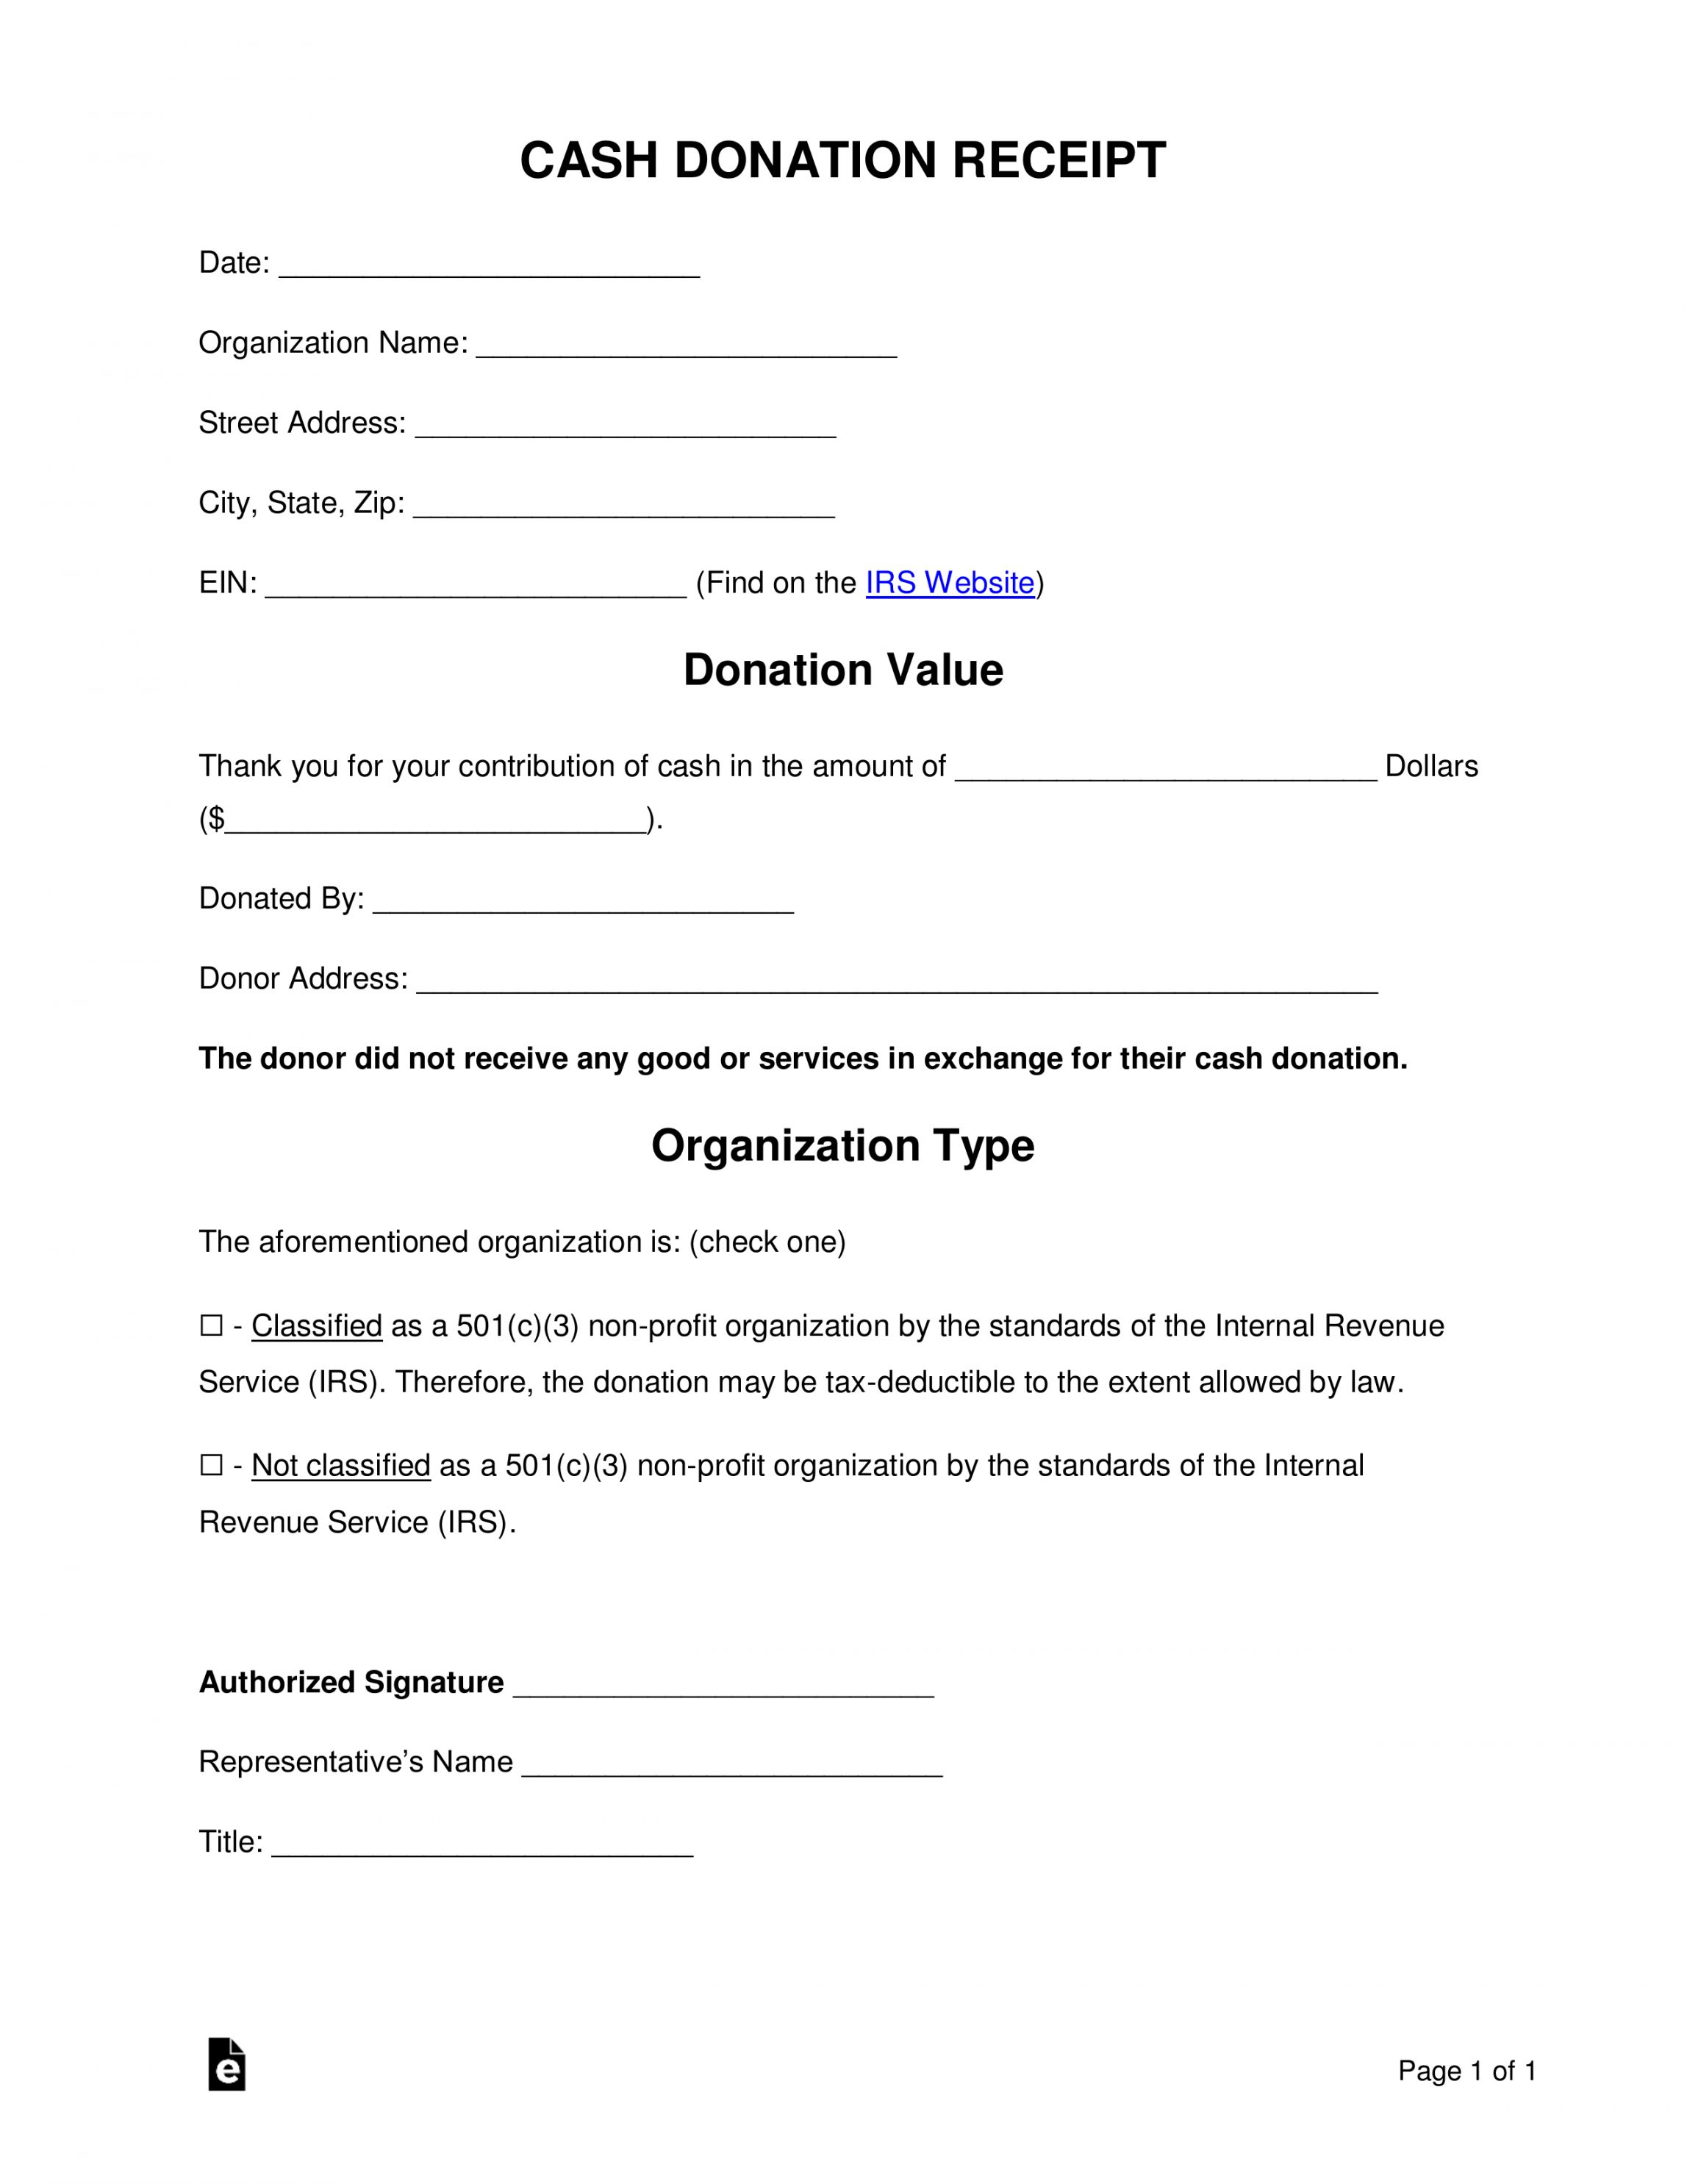 Explore Our Example Of Non Profit Contribution Receipt Template Receipt Template Irs Website Organisation Name